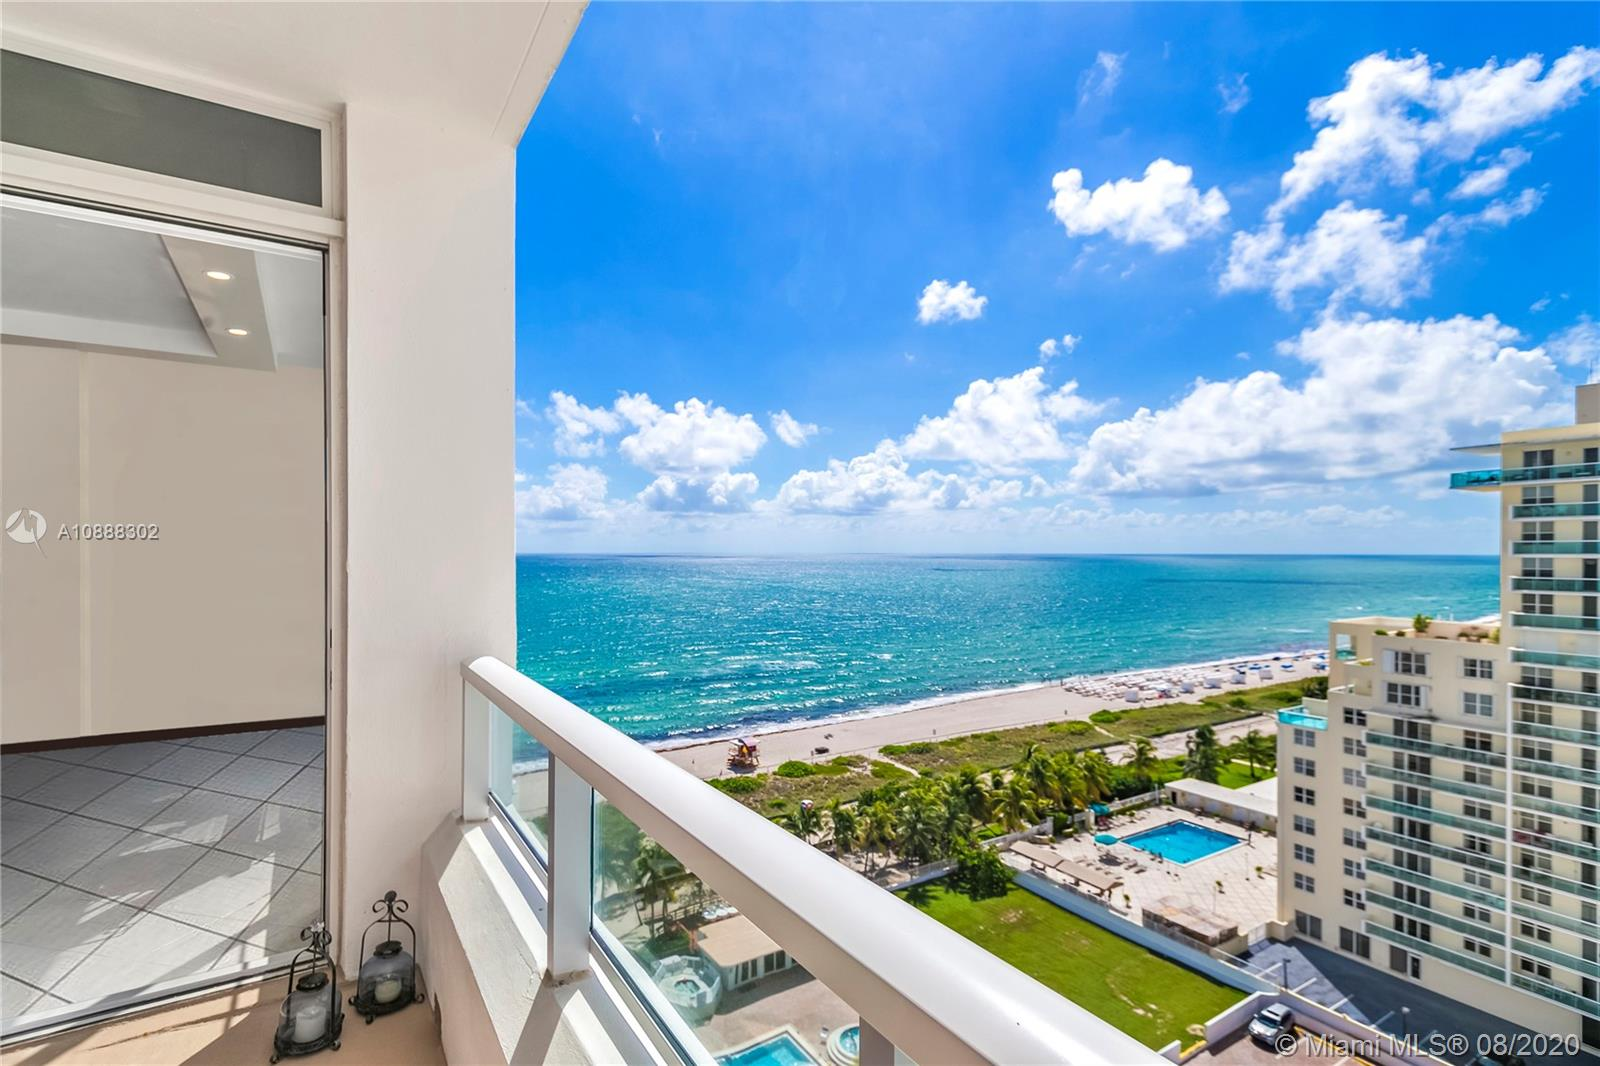 Live in a full-service renovated building by the sea in beautiful Miami Beach! Enjoy gorgeous SE ocean views from this large remodeled 2 bed / 2 bath lower penthouse level condo with balcony at the Carriage Club North, an iconic Miami Beach condominium that offers resort-style amenities: concierge services, valet, restaurant, pool, spa, BBQ area, fitness center & direct access to the beach & the new Miami Beach BeachWalk, a 10 M path from South Pointe Park to Bal Harbour. Unit 1517 features high ceilings, tile & oak floors, hurricane impact glass throughout, top of the line appliances, including Miele dishwasher & Monogram induction range. Yearly or semi-annual leases allowed. Theunit is unfurnished and offers 2 assigned parking spaces & a gorgeous balcony! NO Assessments! Move-in ready!